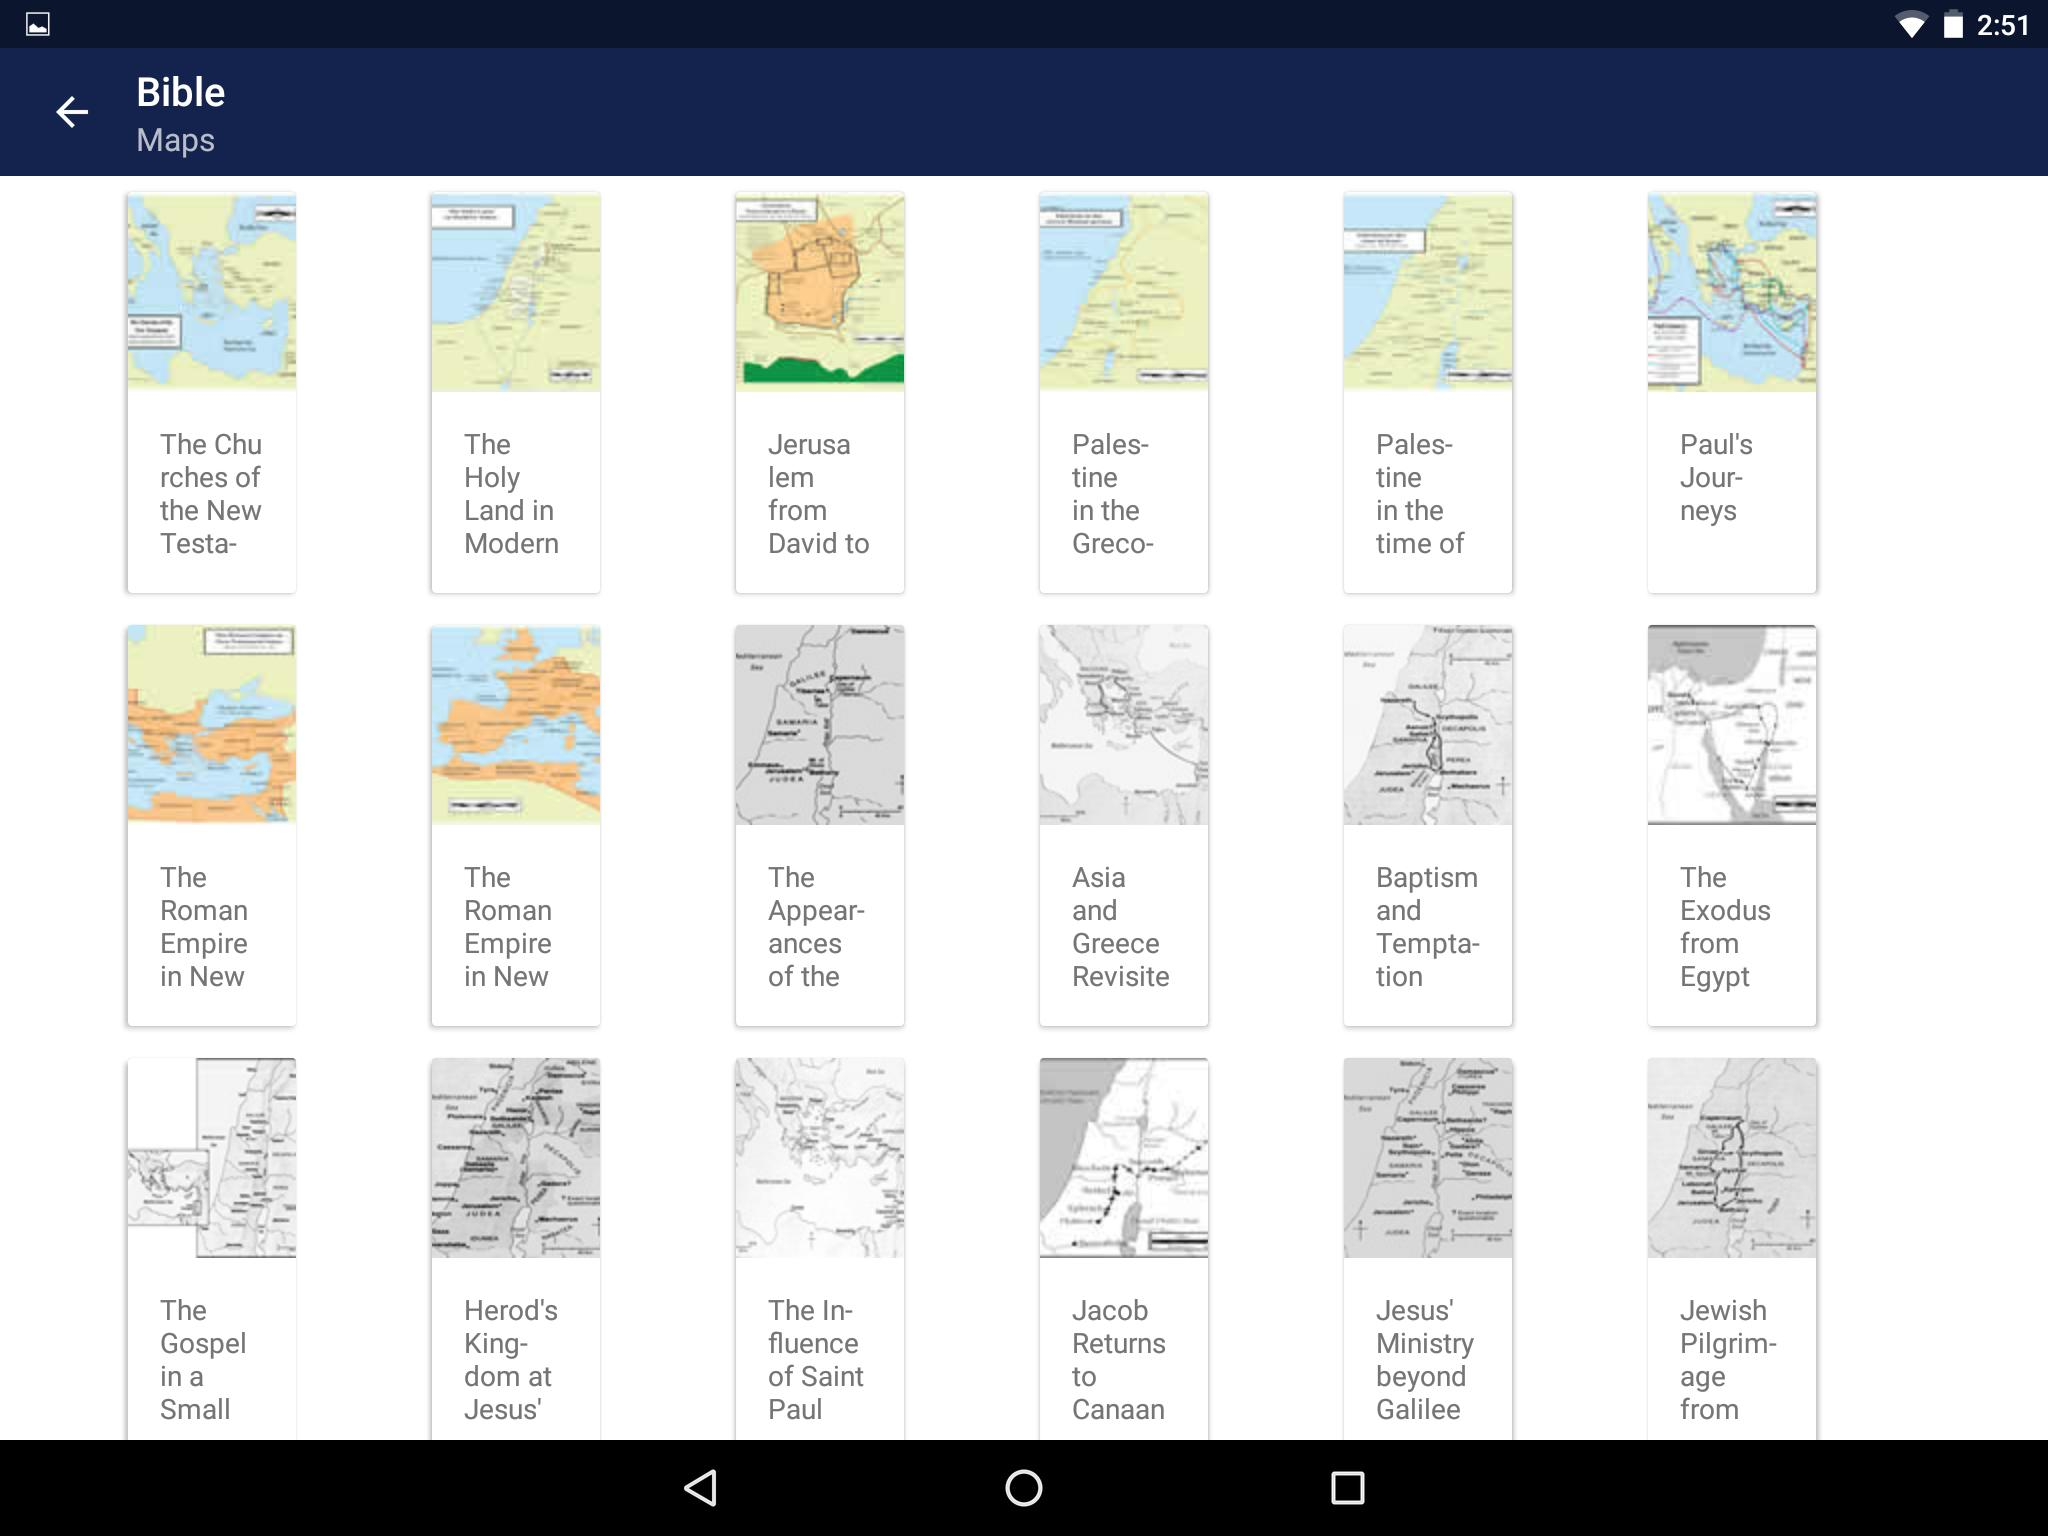 Catholic Study Bible App for Android - APK Download